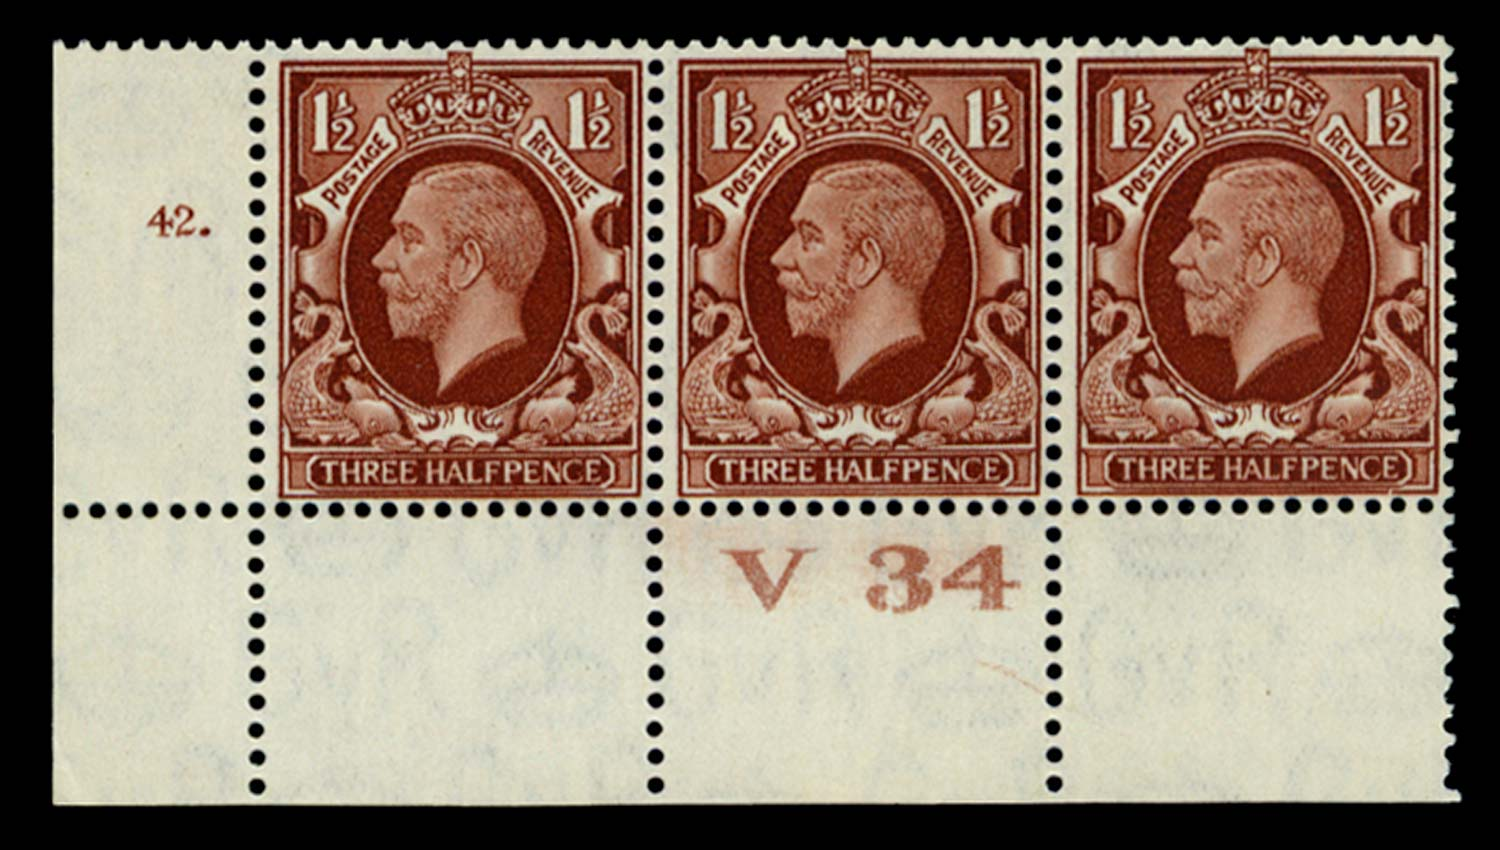 GB 1934  SG441 Mint Control V34, Cyl. 42 (Dot) with broken frame variety